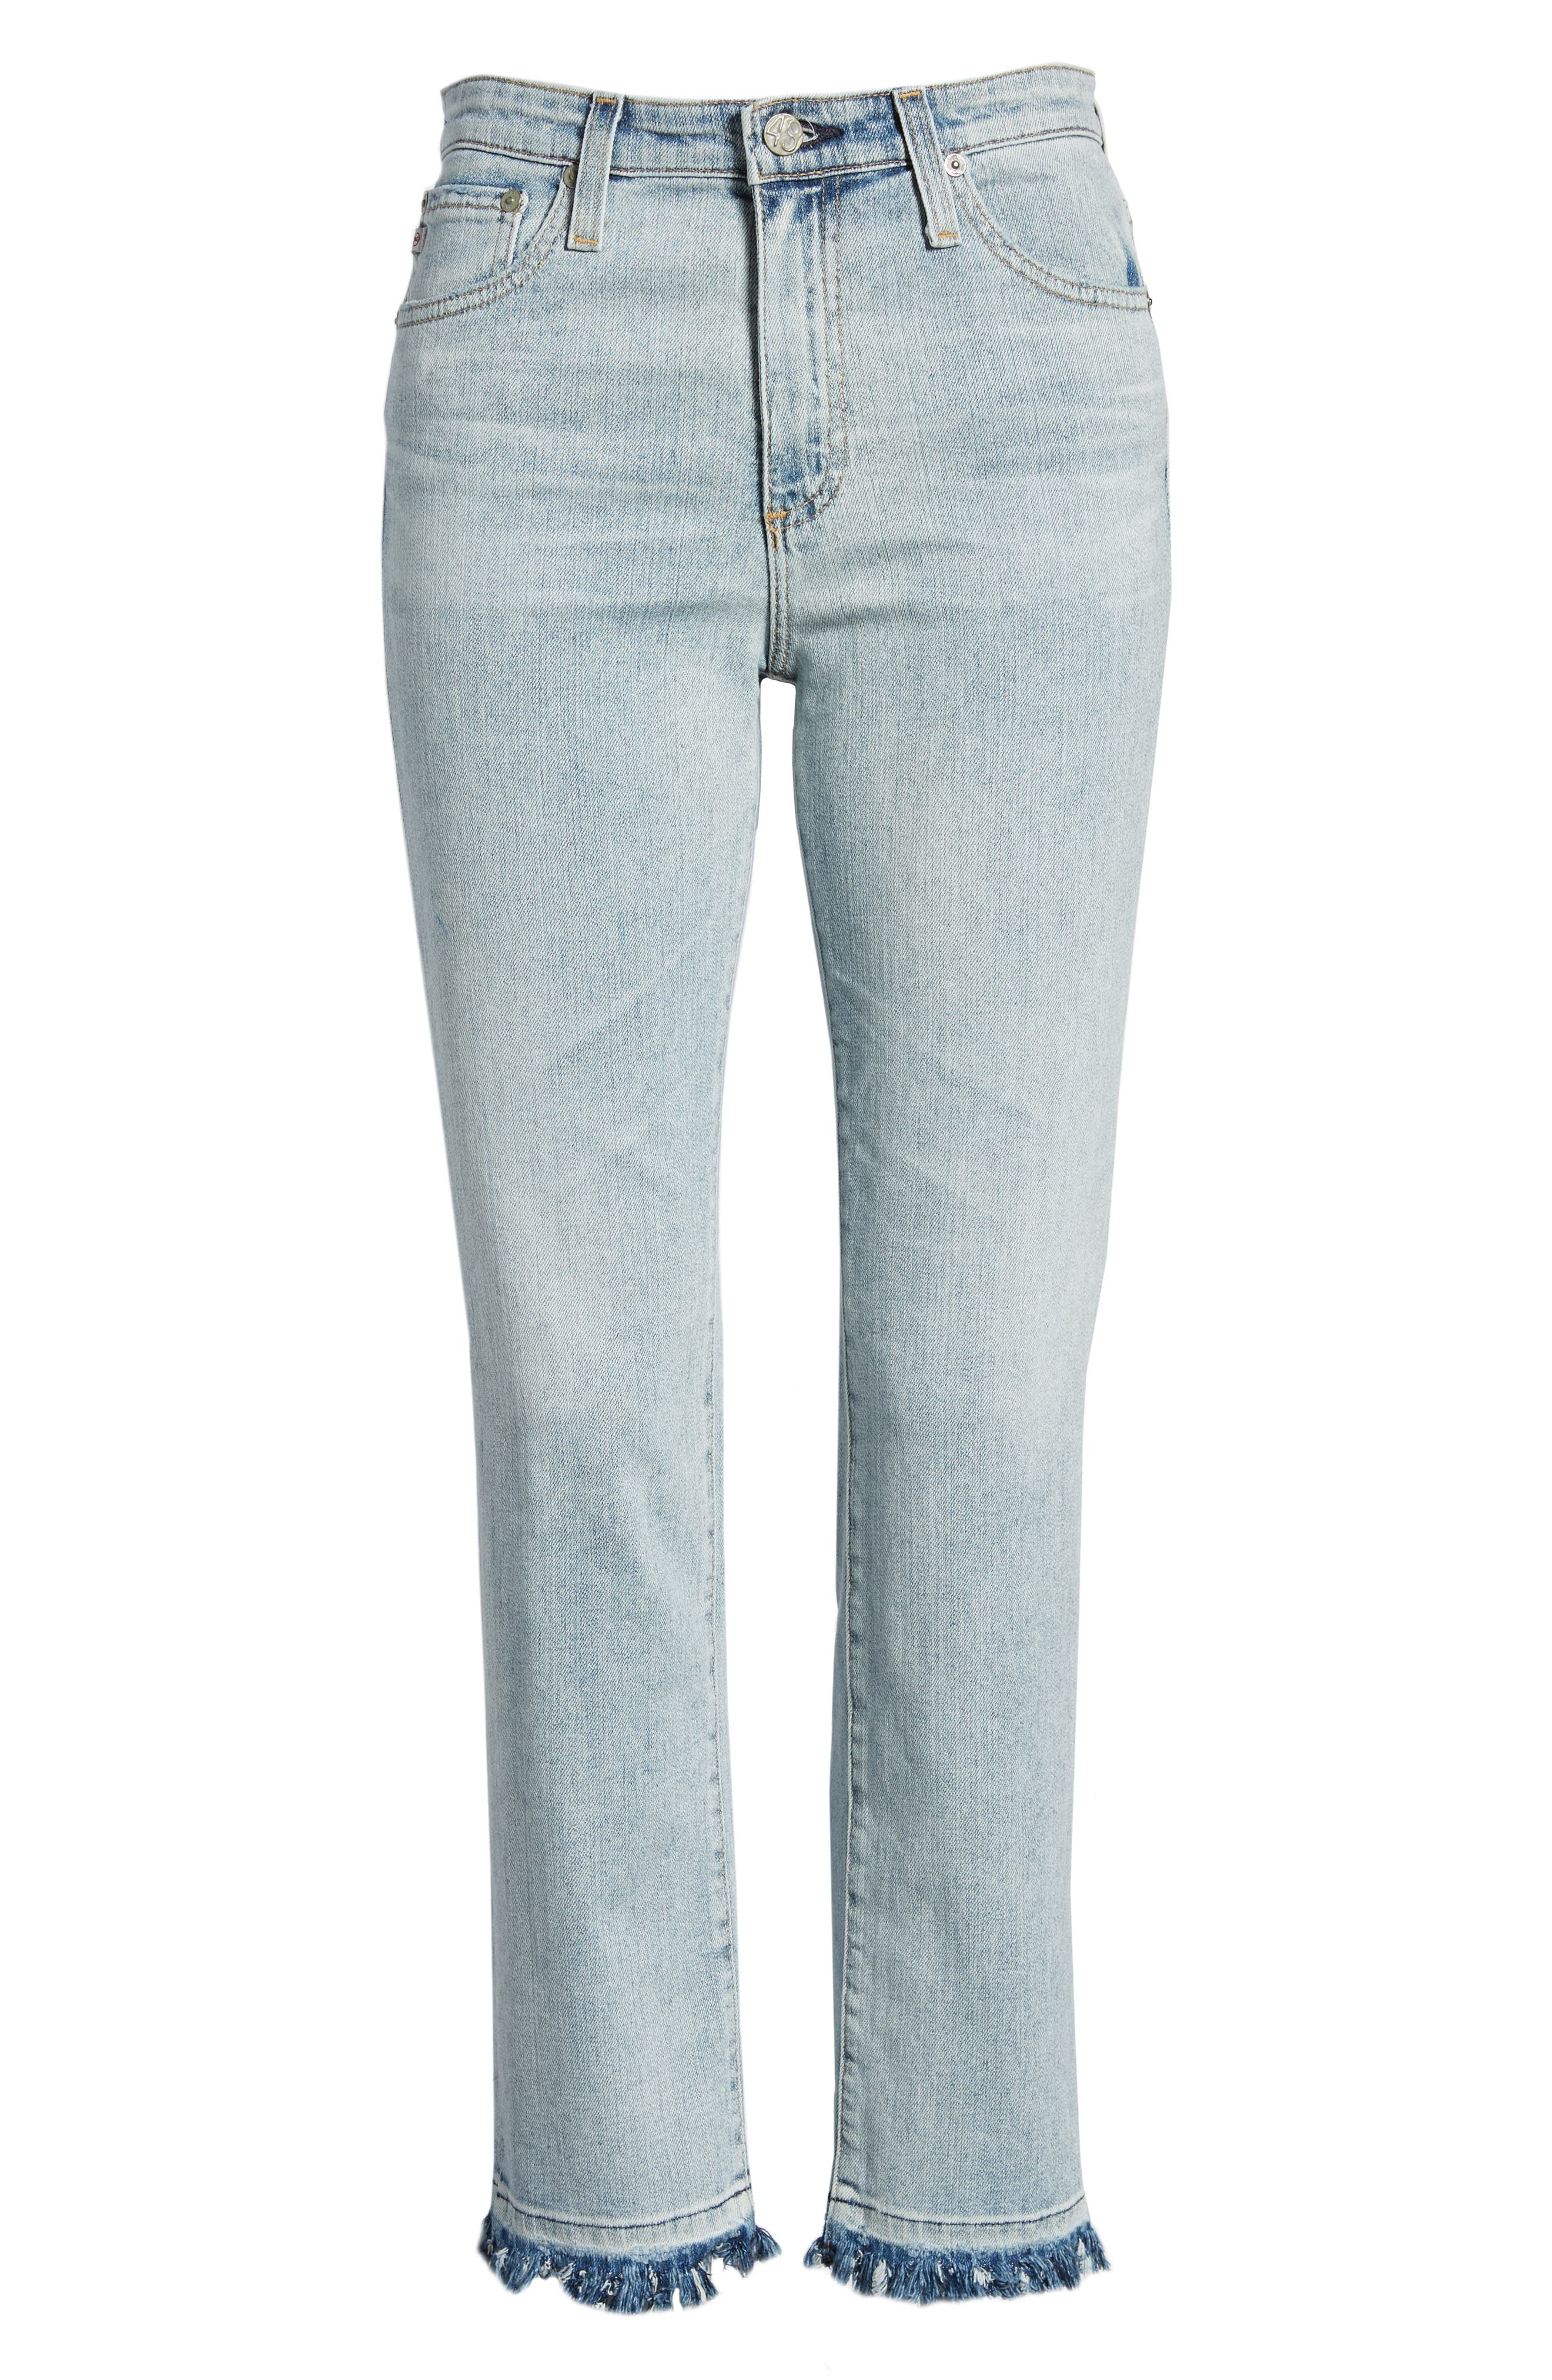 The Isabelle High Waist Crop Straight Leg Jeans,                             Alternate thumbnail 7, color,                             21 Years-Reflection